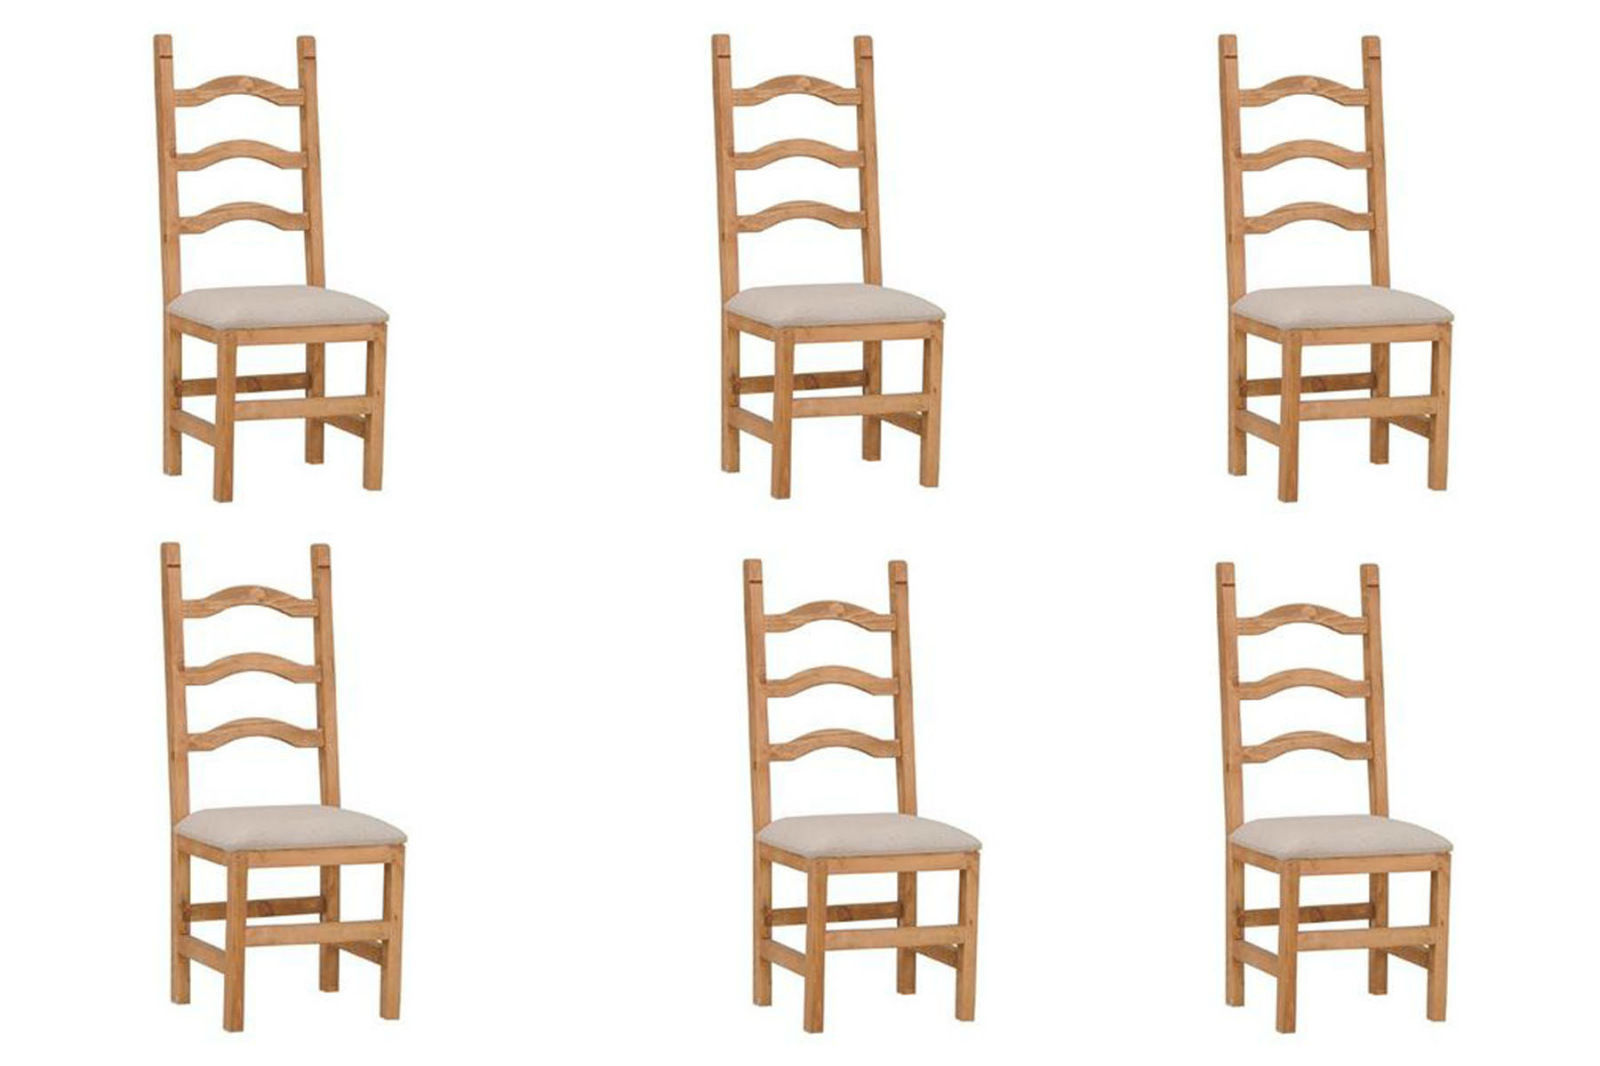 Set of Six Ladder Back Padded Seat Chair - Solid Wood - Rustic - Western -